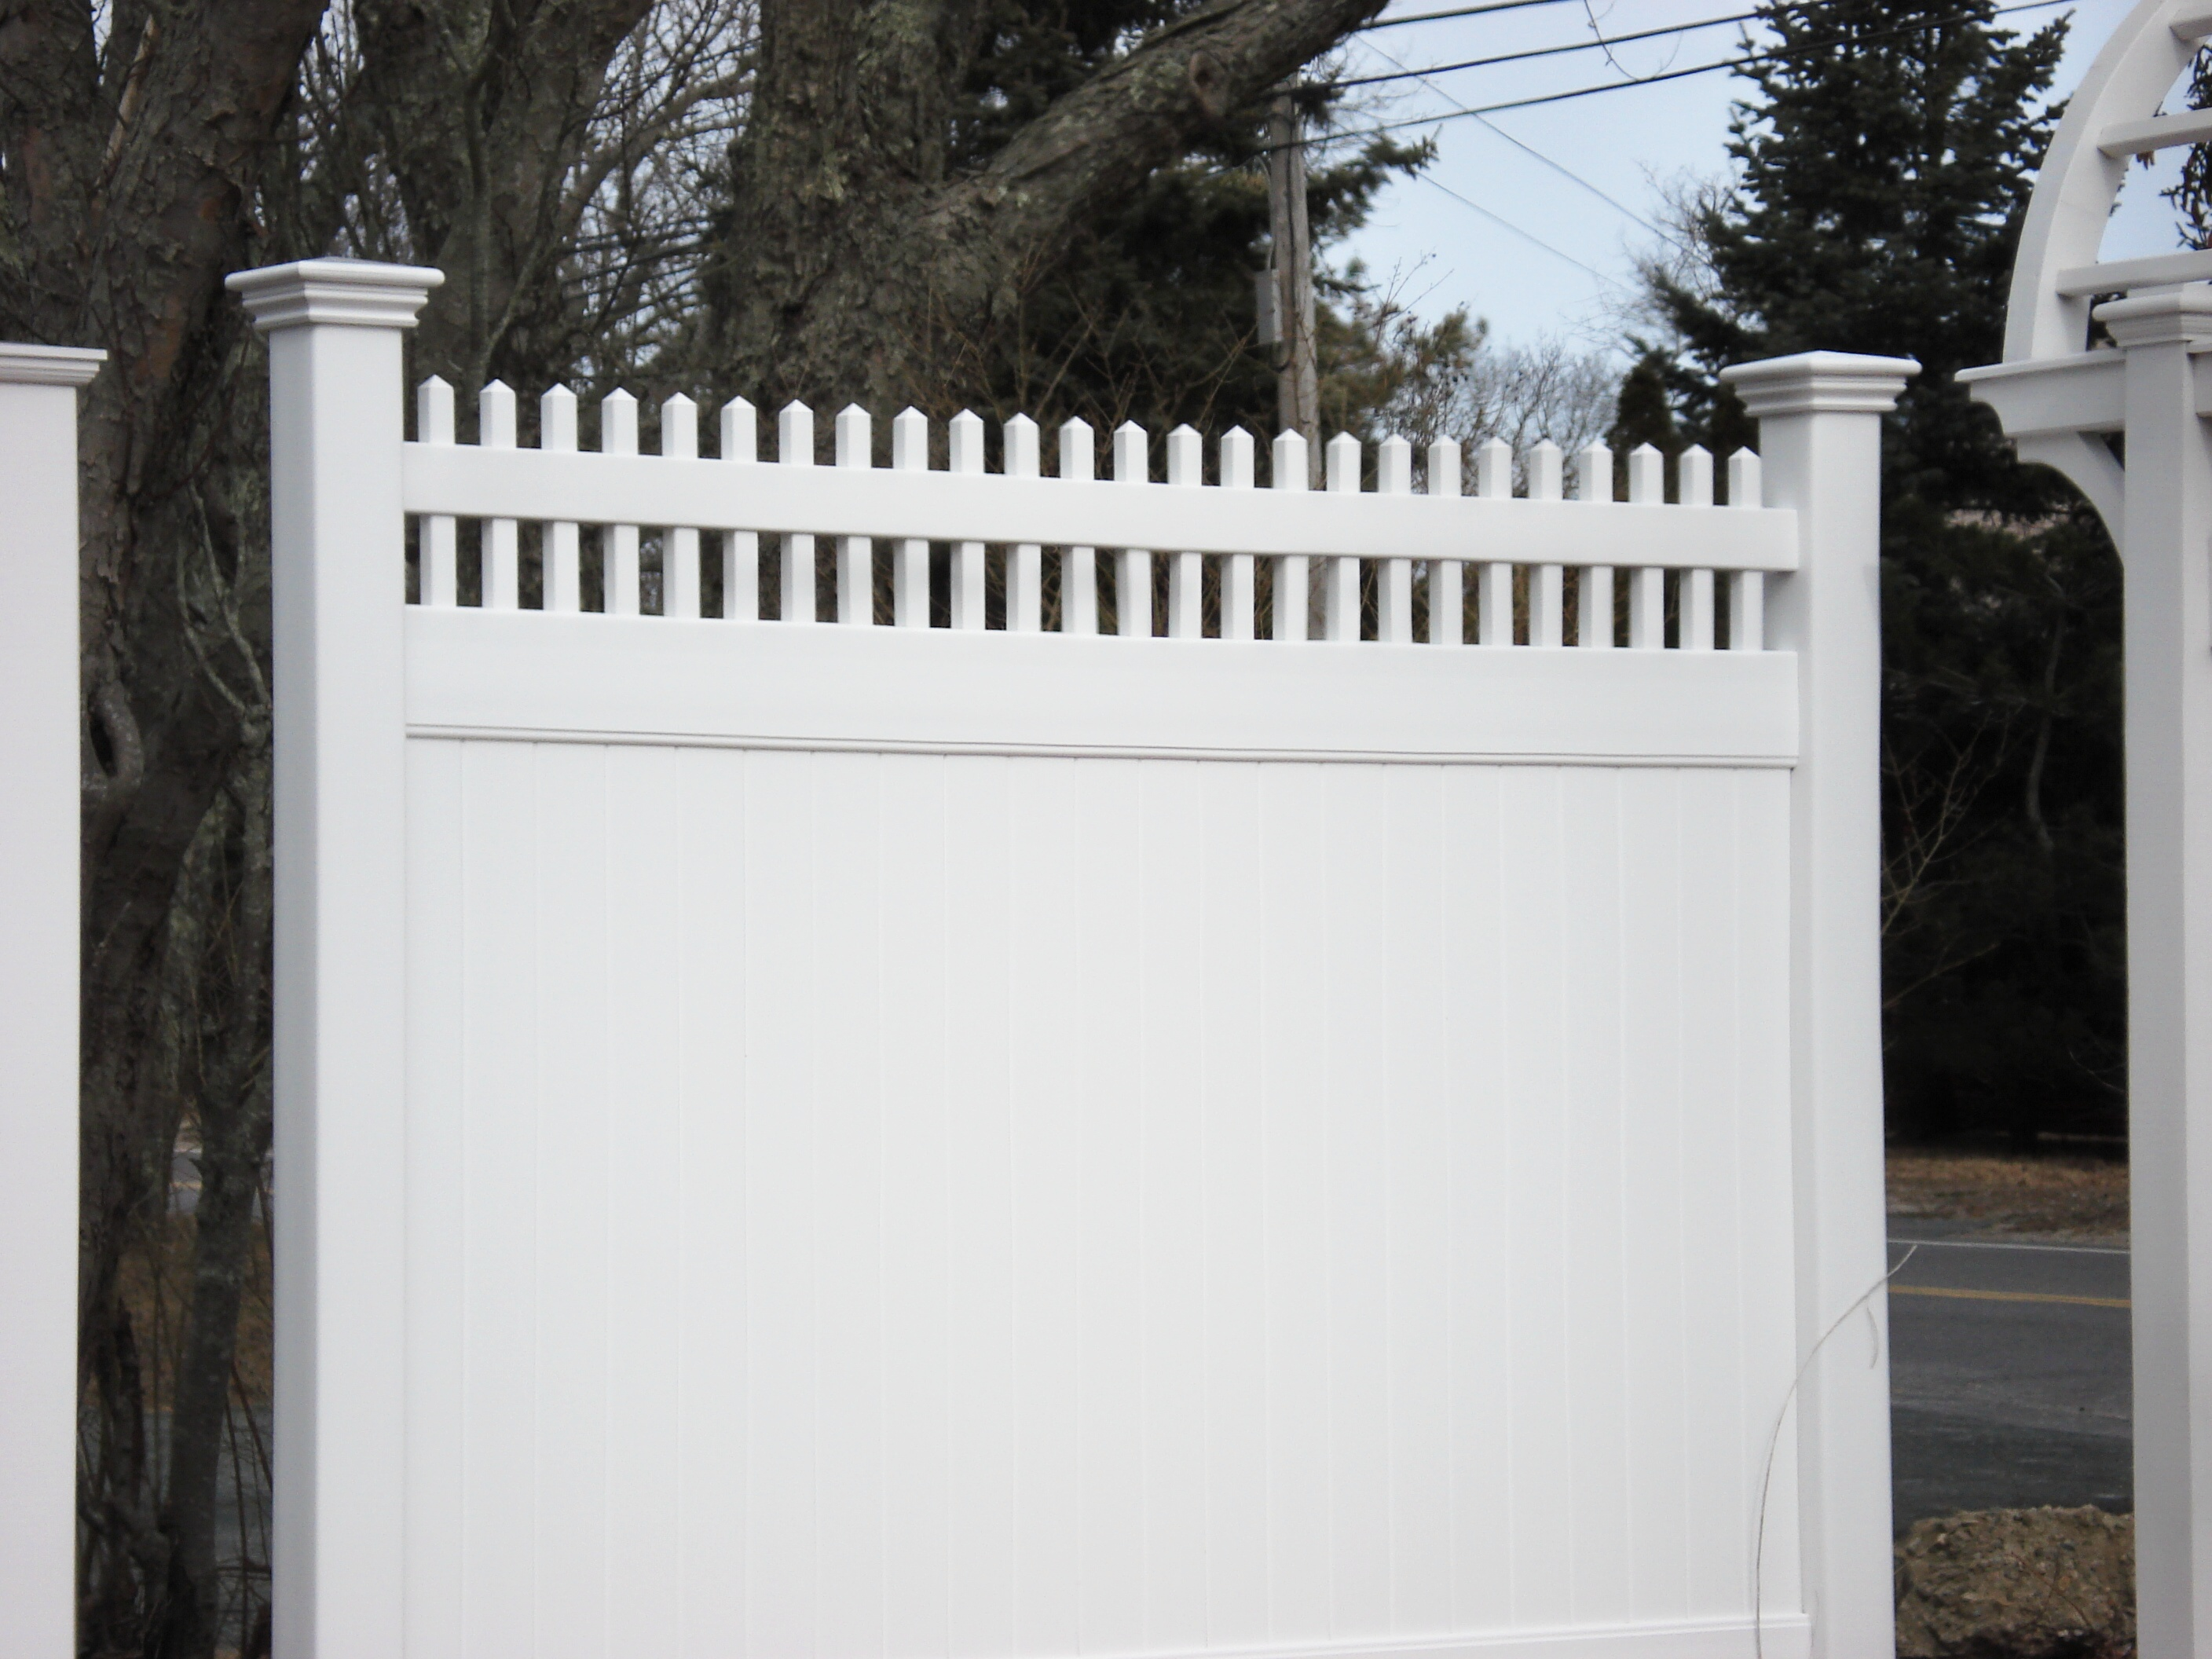 Moonstone Open Spindle Top Pvc Spaulding Fence Amp Supply